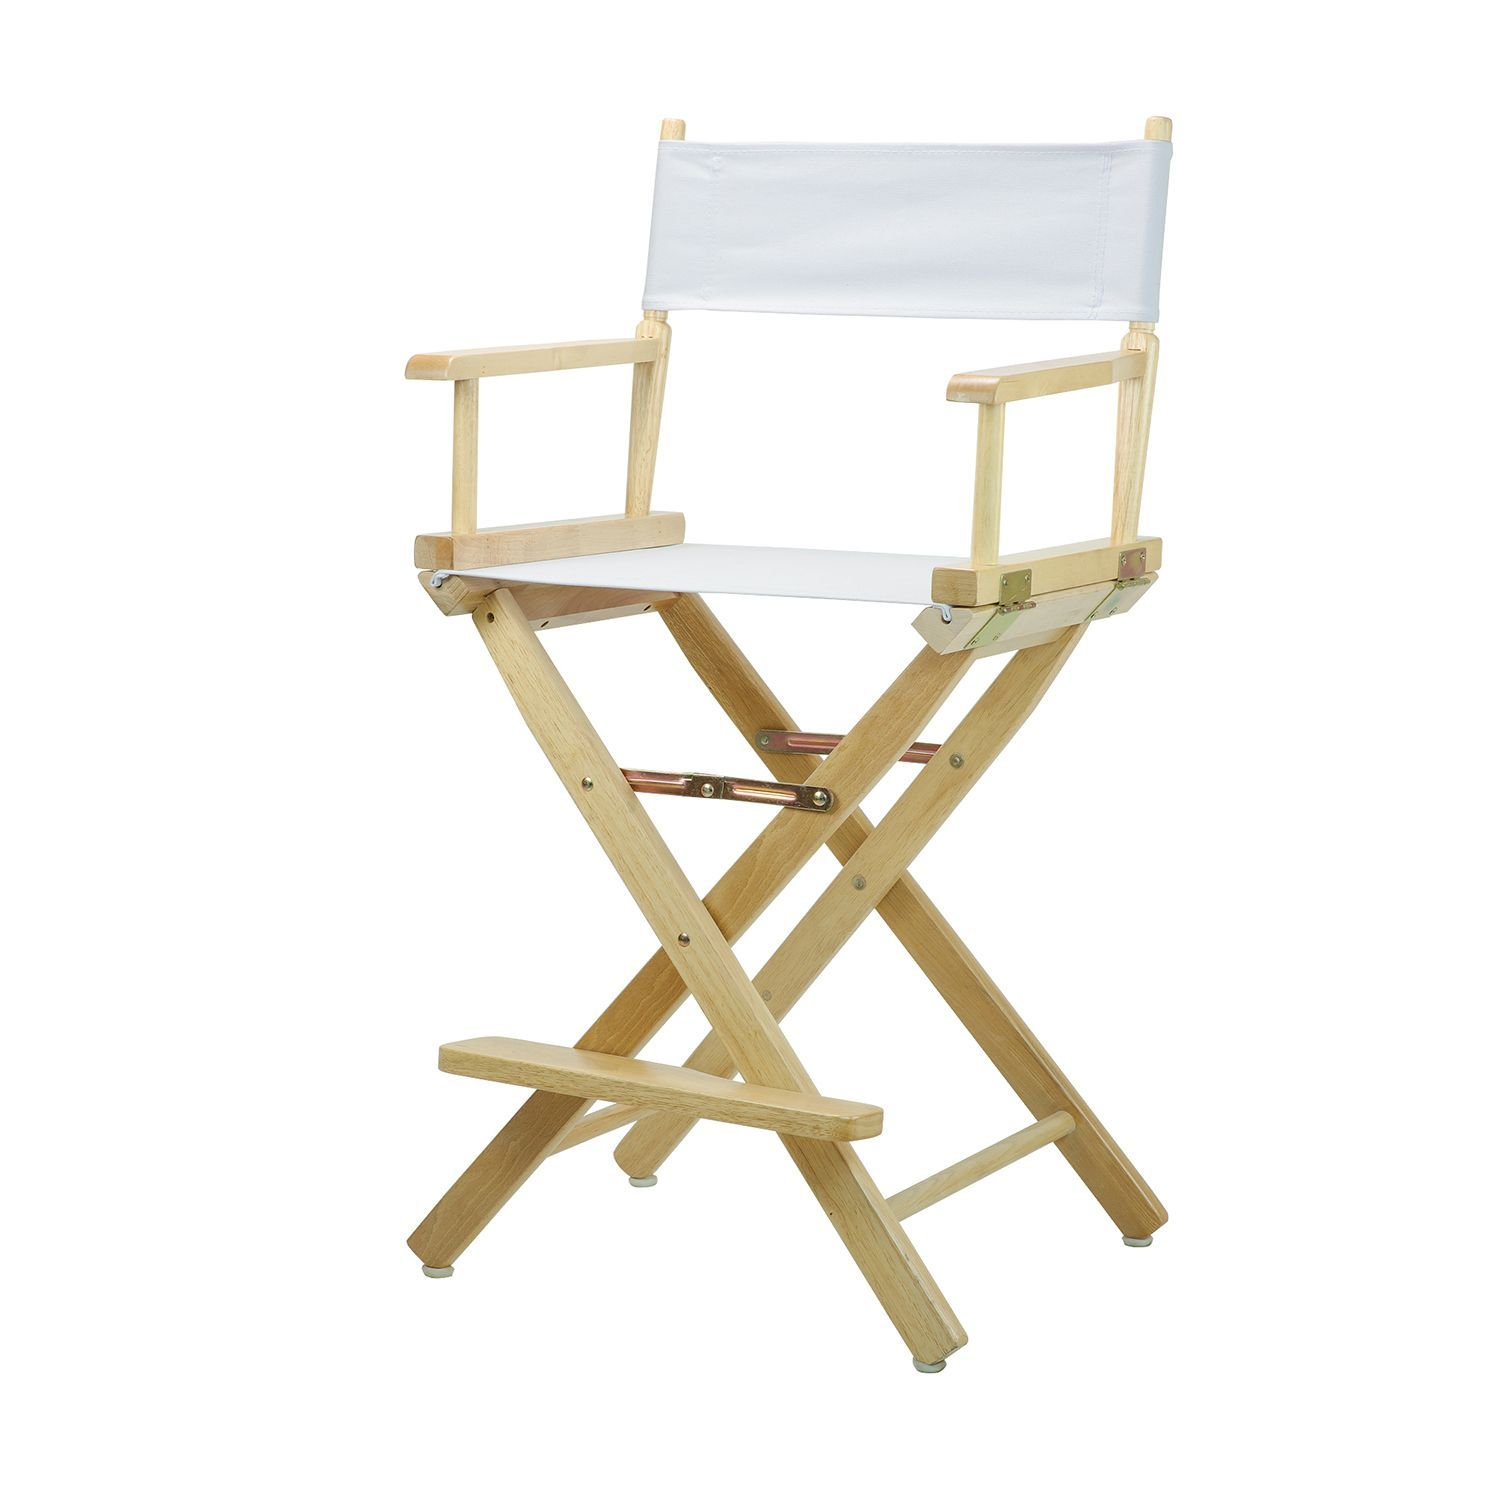 Surprising 24 Directors Chair Natural Frame With White Canvas Creativecarmelina Interior Chair Design Creativecarmelinacom